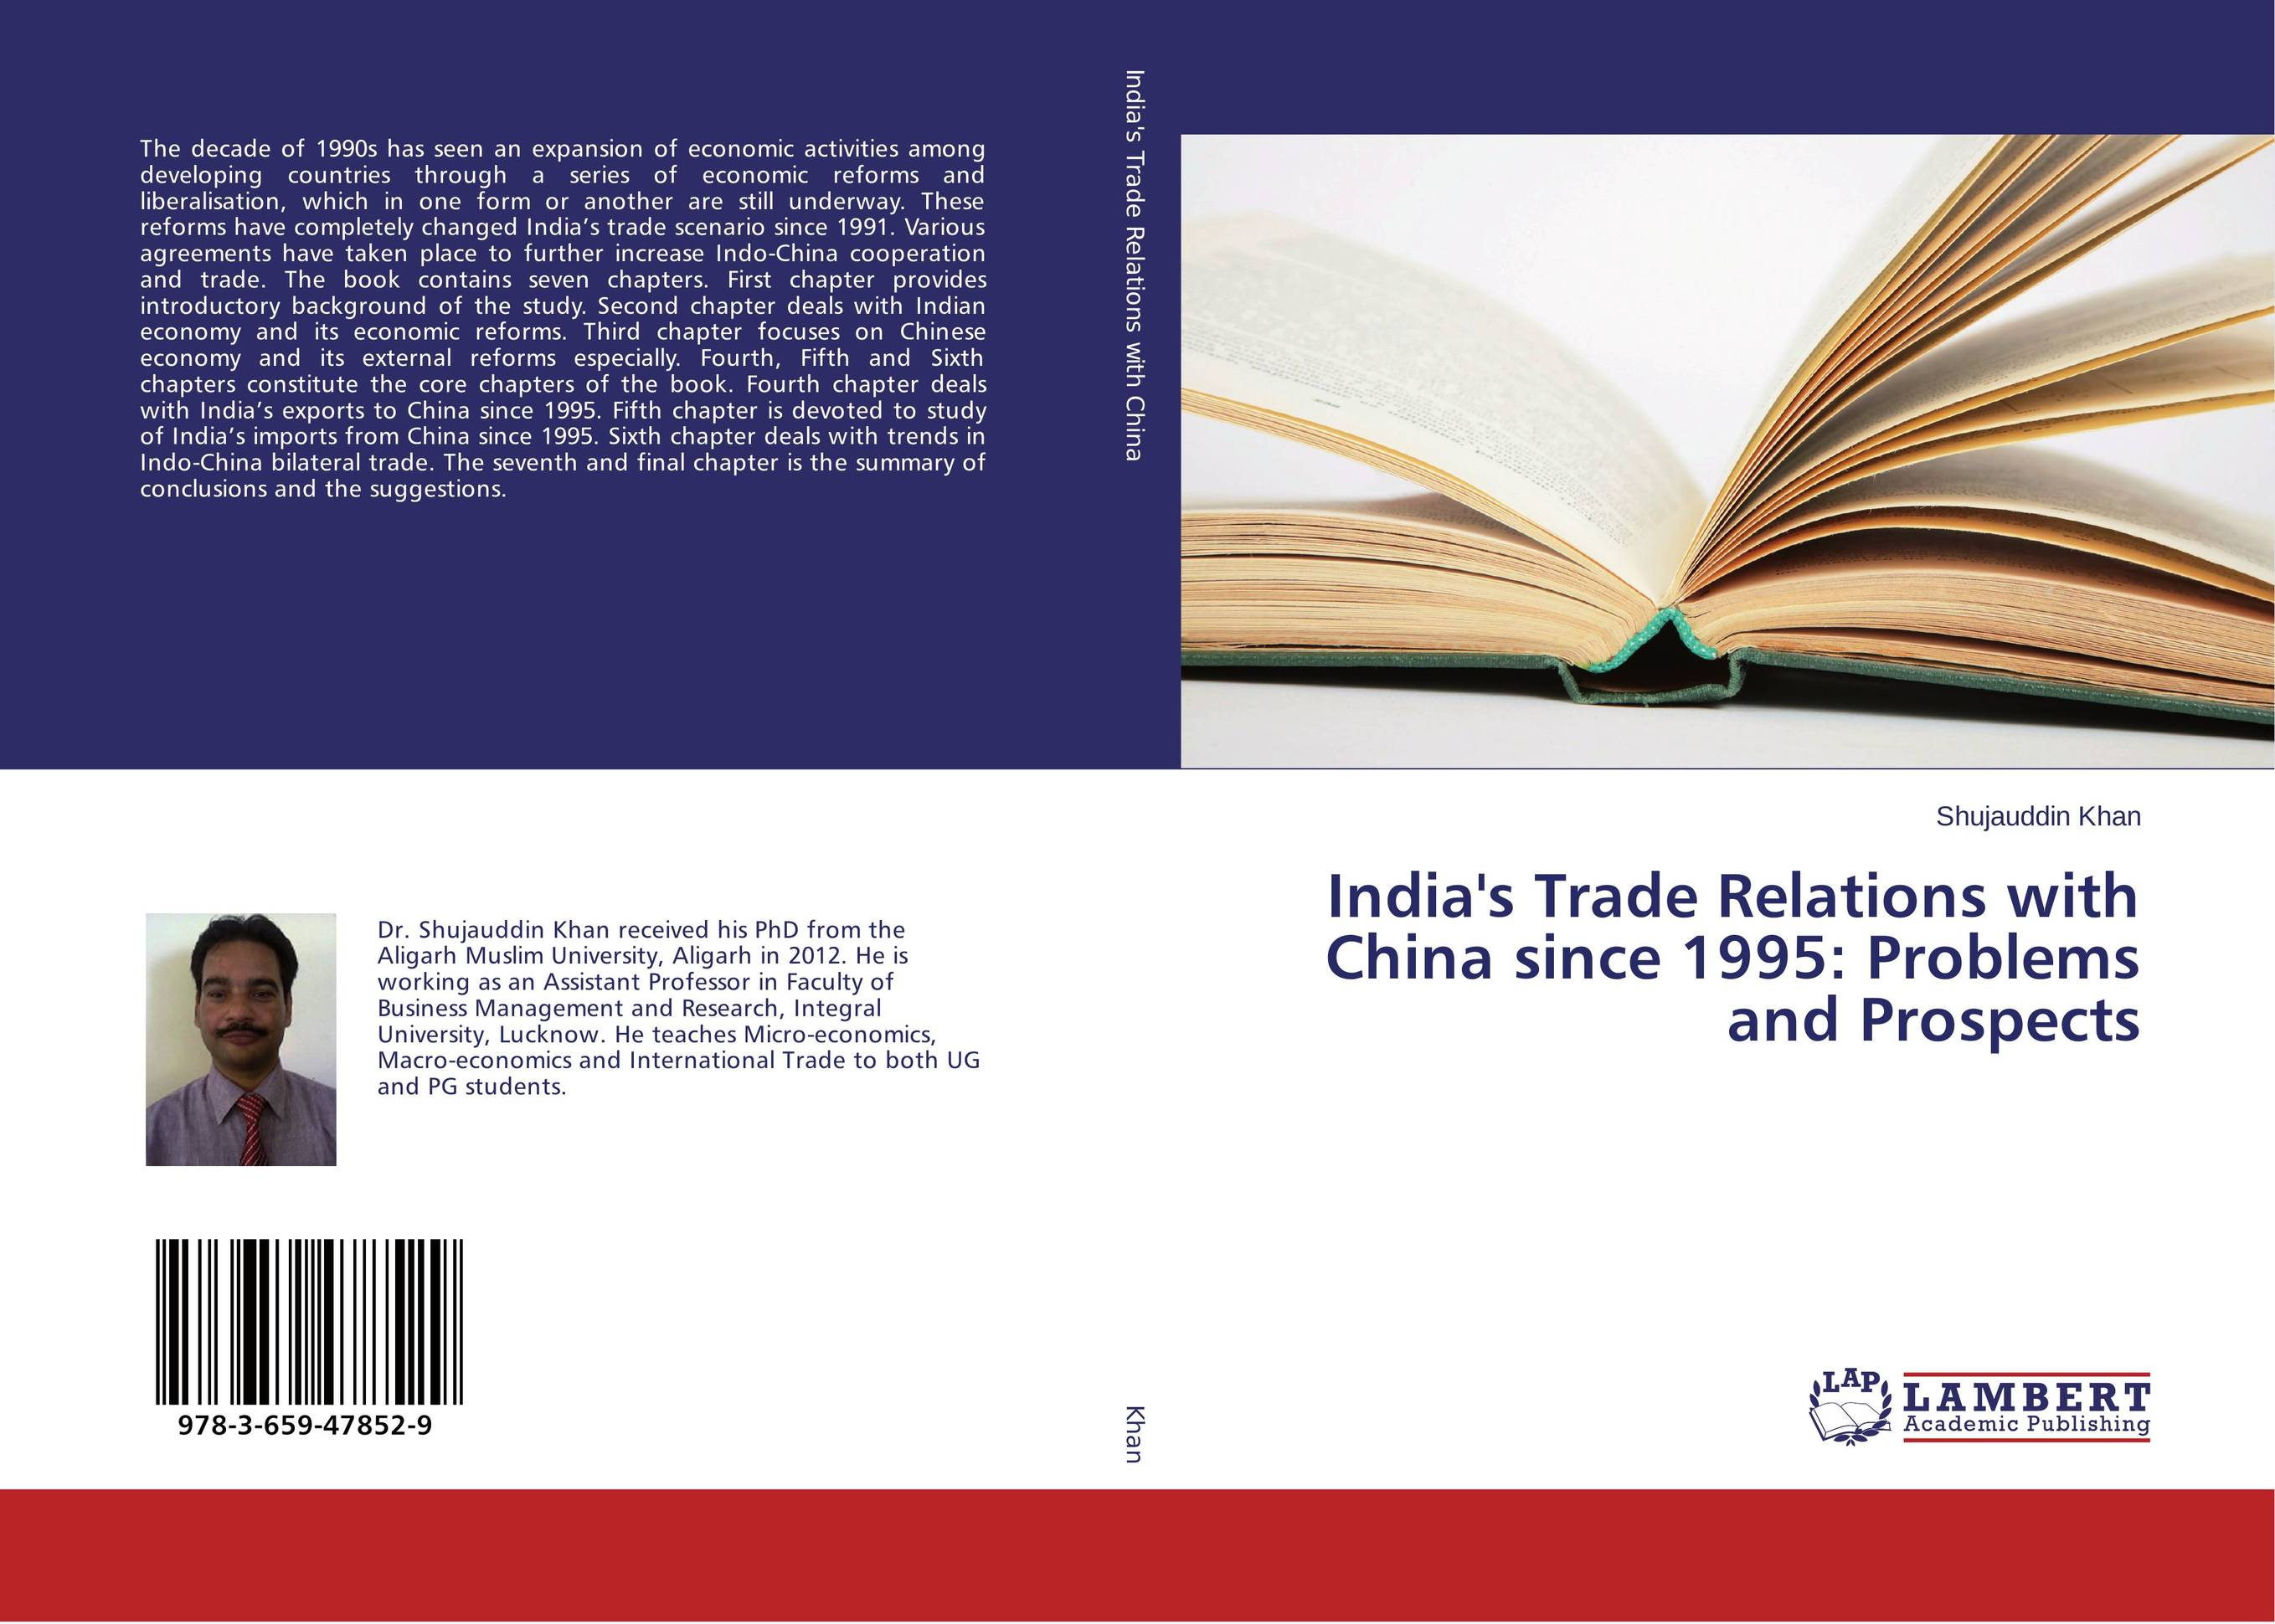 India's Trade Relations with China since 1995: Problems and Prospects influence of economic relations on bilateral relations